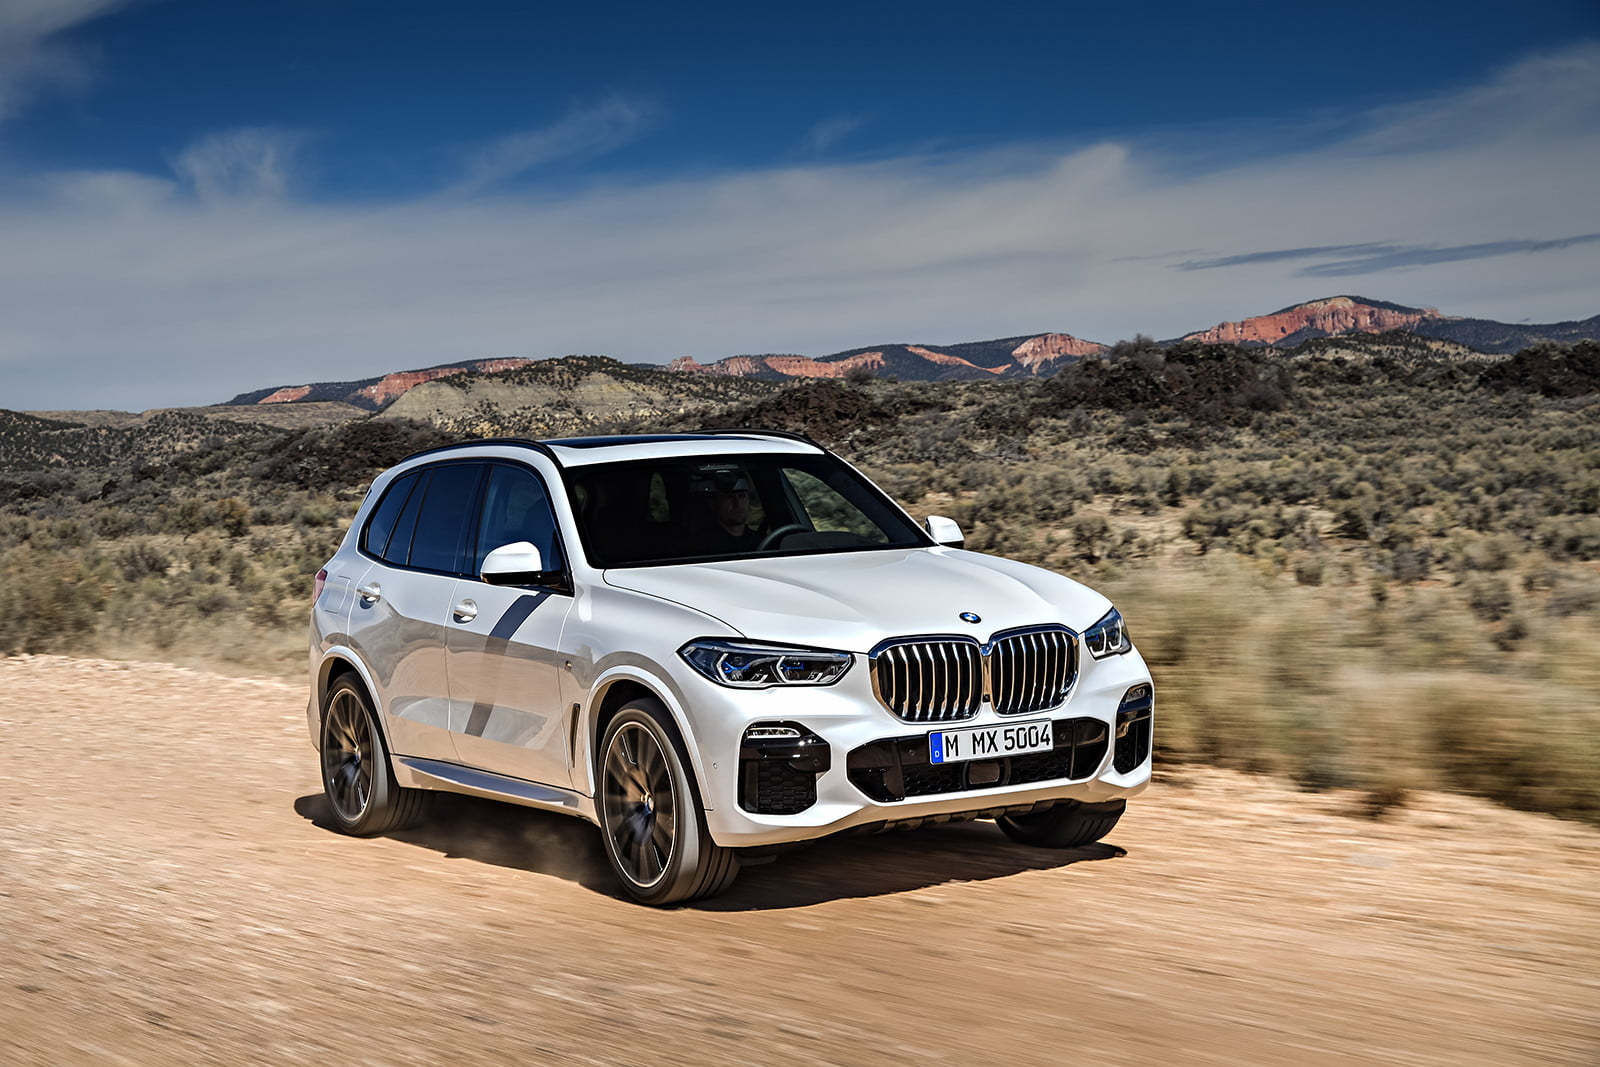 Specs And Pricing For 2020 Bmw X5 M50i And X7 M50i With Newest N63 V8